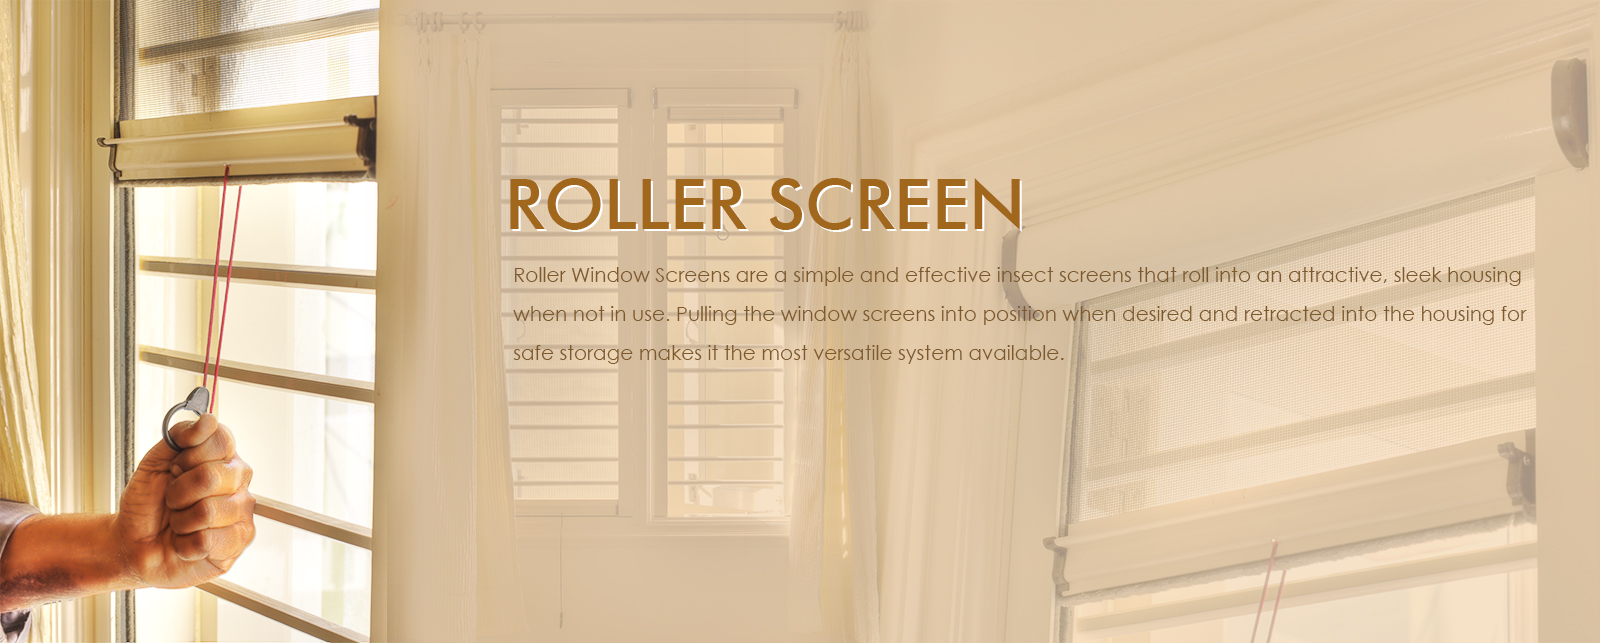 Roller Screens in Bangalore